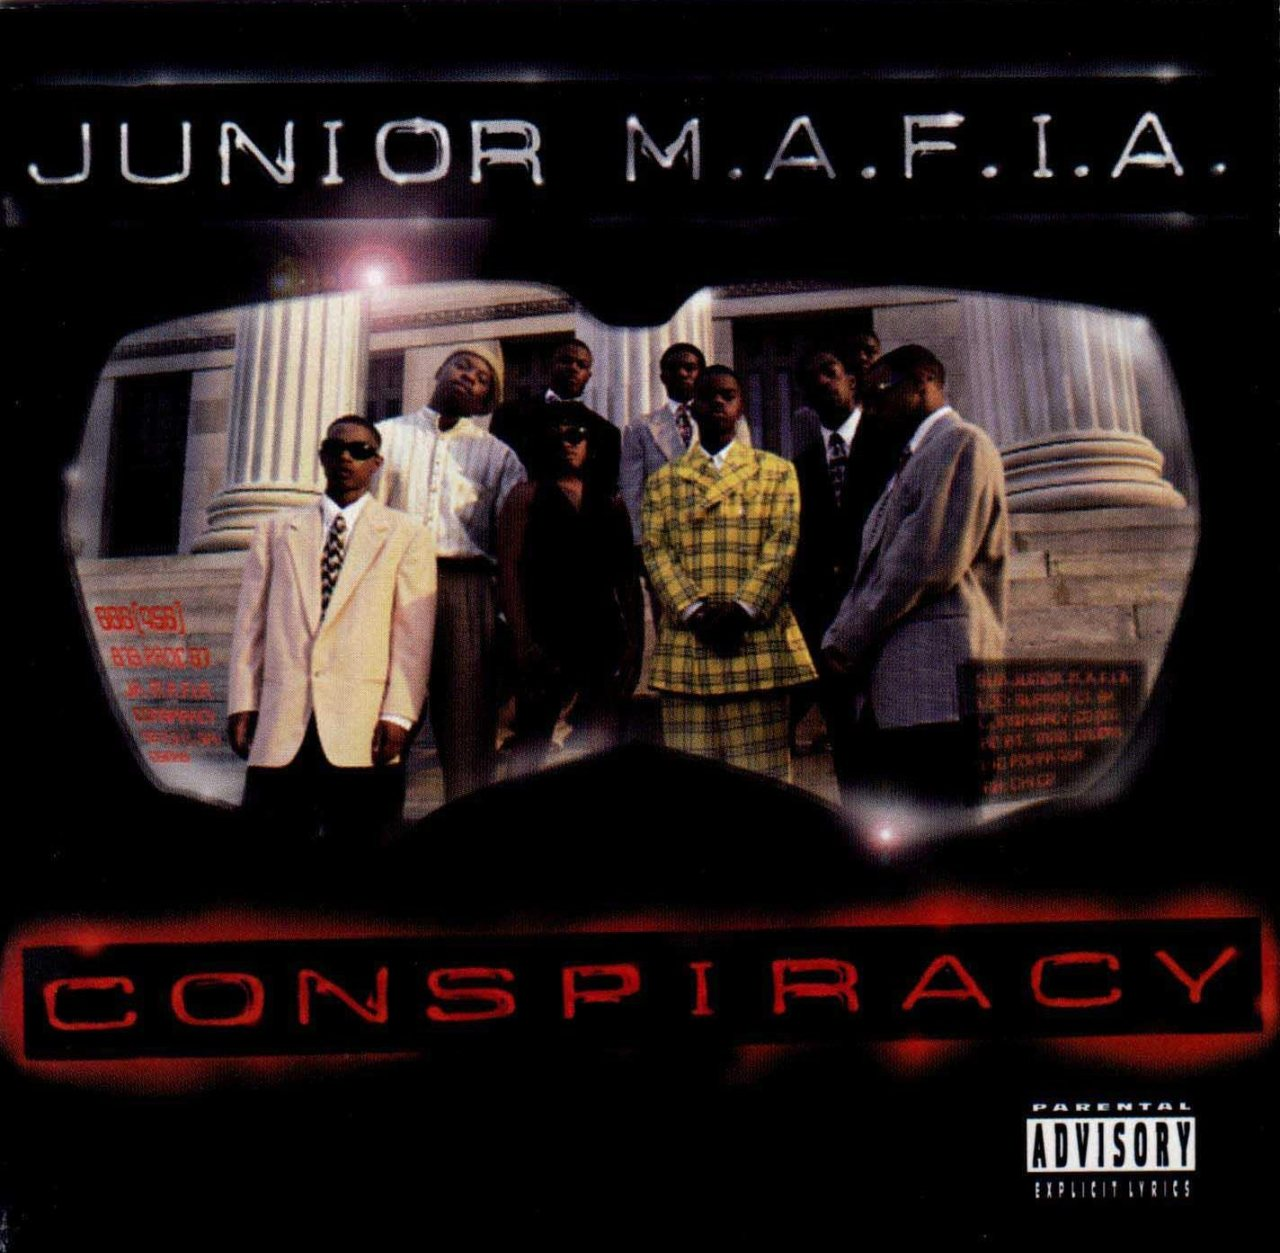 Today in Hip Hop History: Junior Mafia Releases Their Debut Album 'Conspiracy Theory' 24 Years Ago